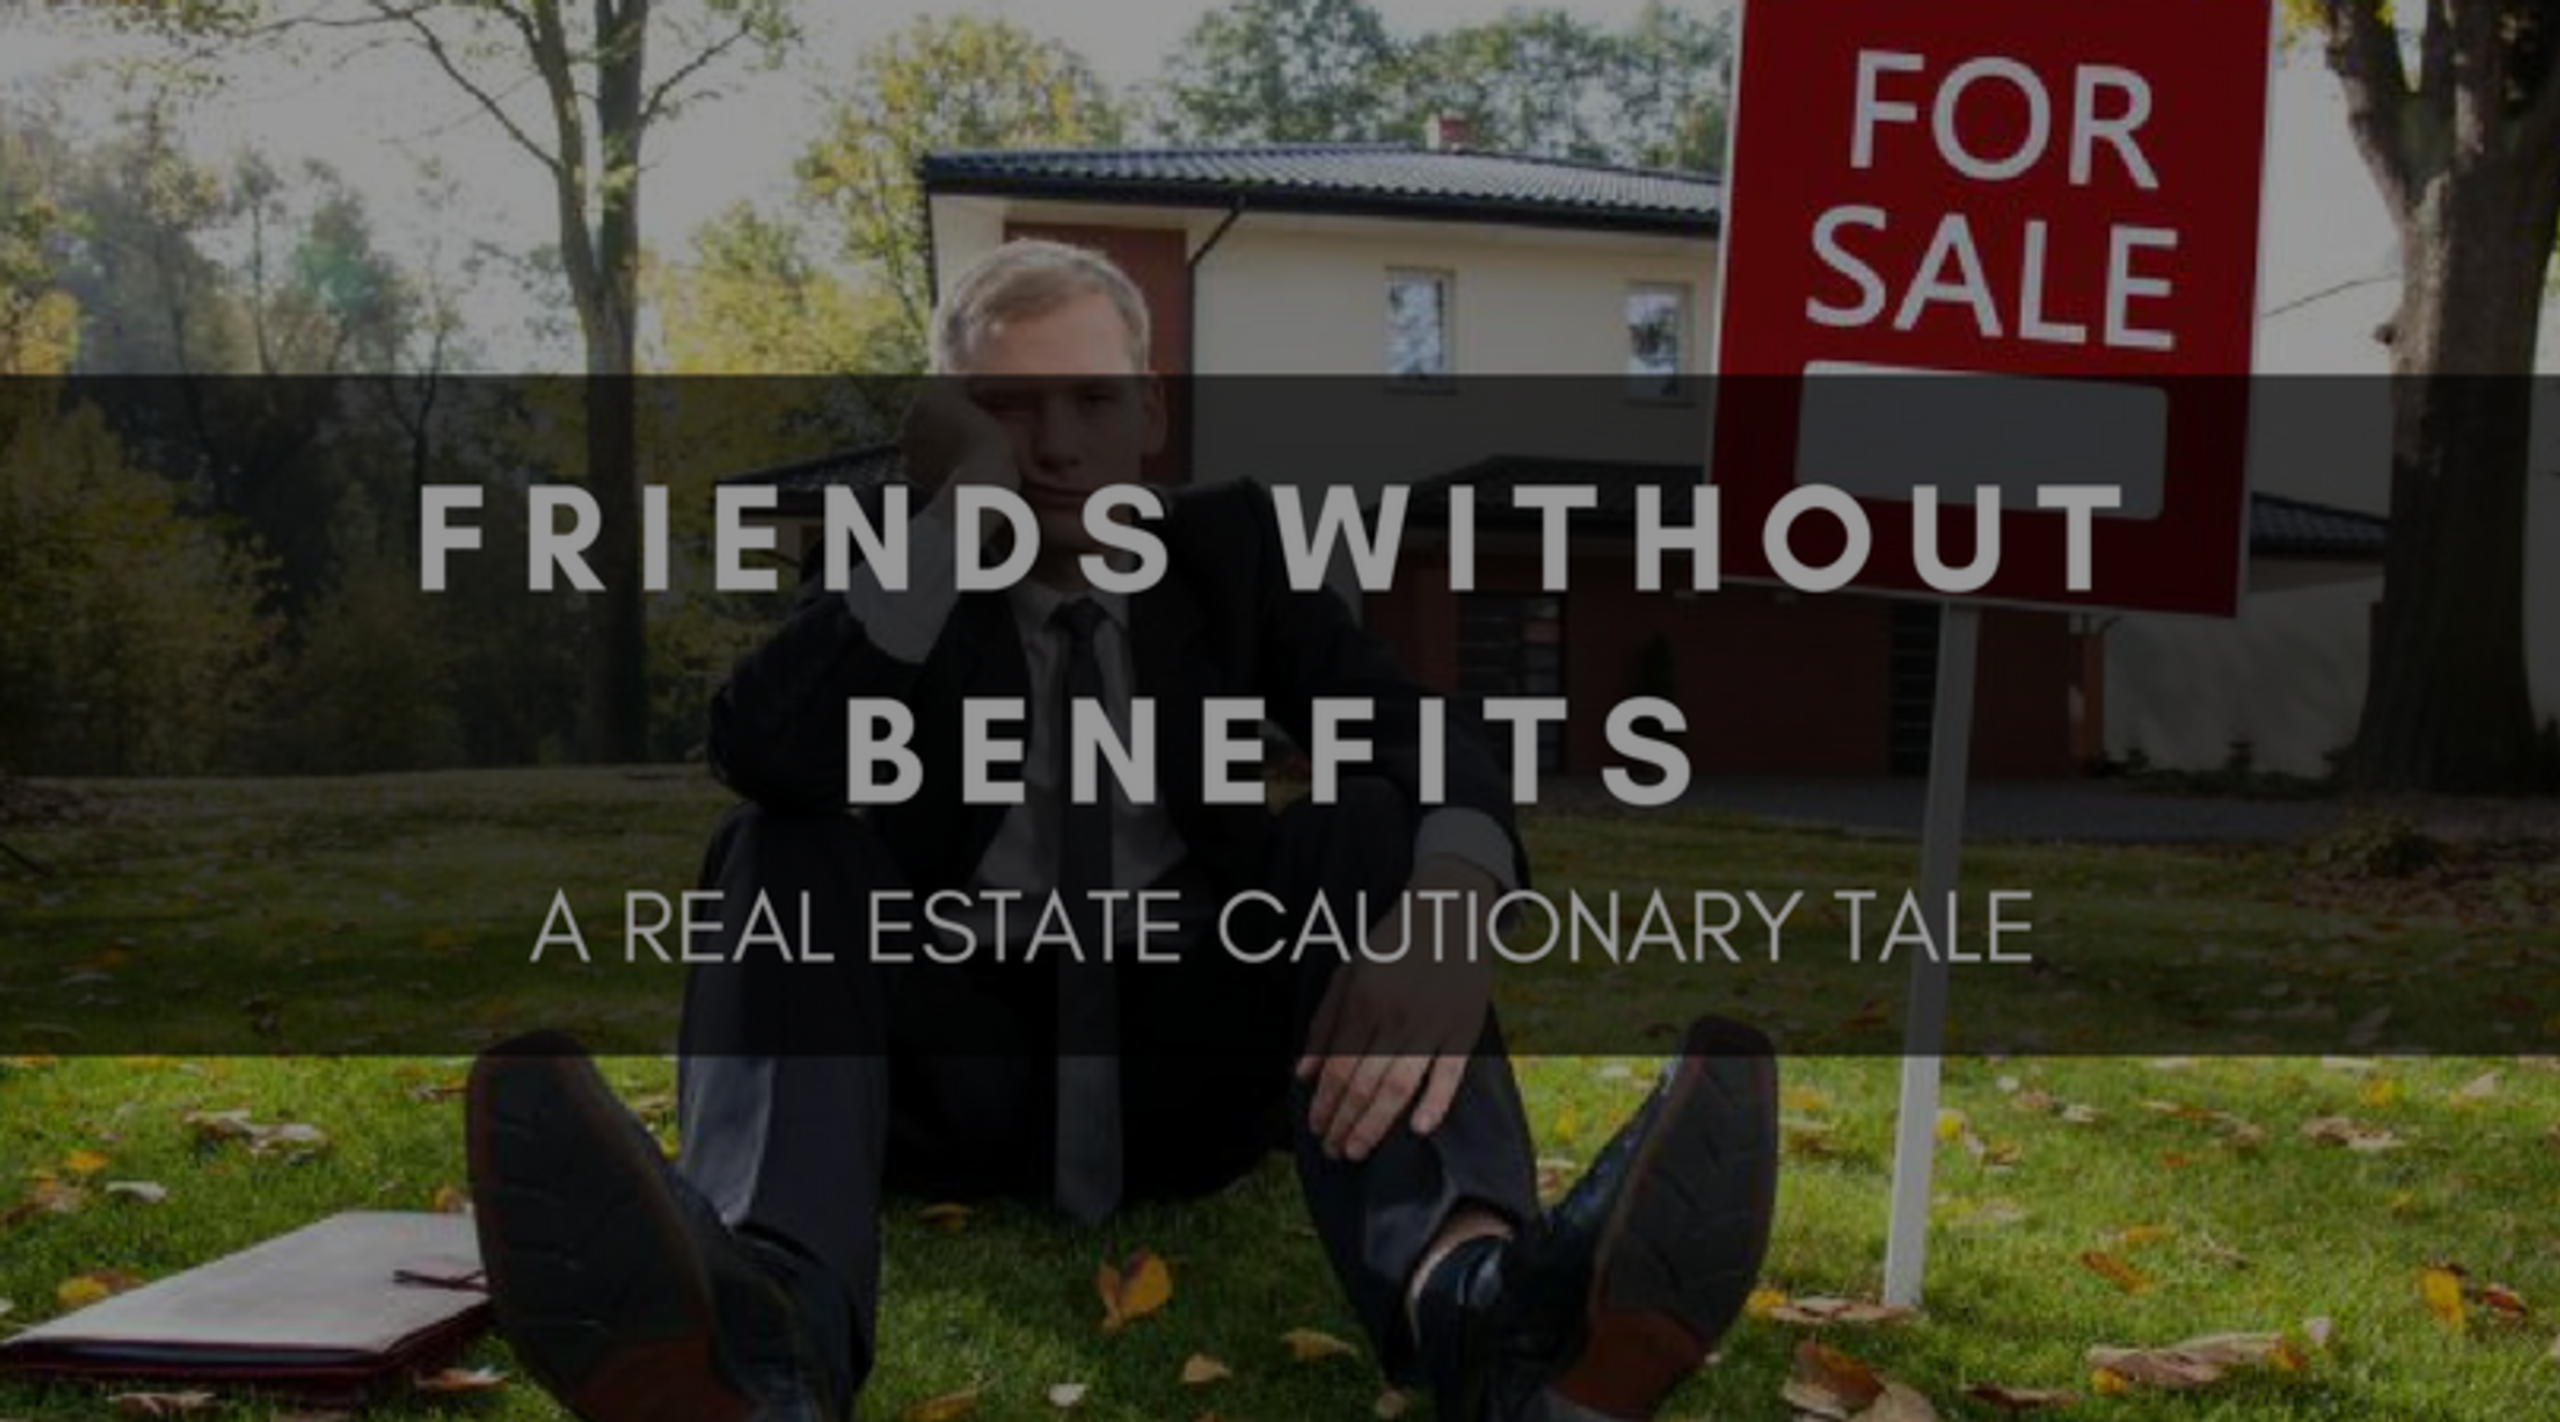 FRIENDS WITHOUT BENEFITS | A REAL ESTATE CAUTIONARY TALE